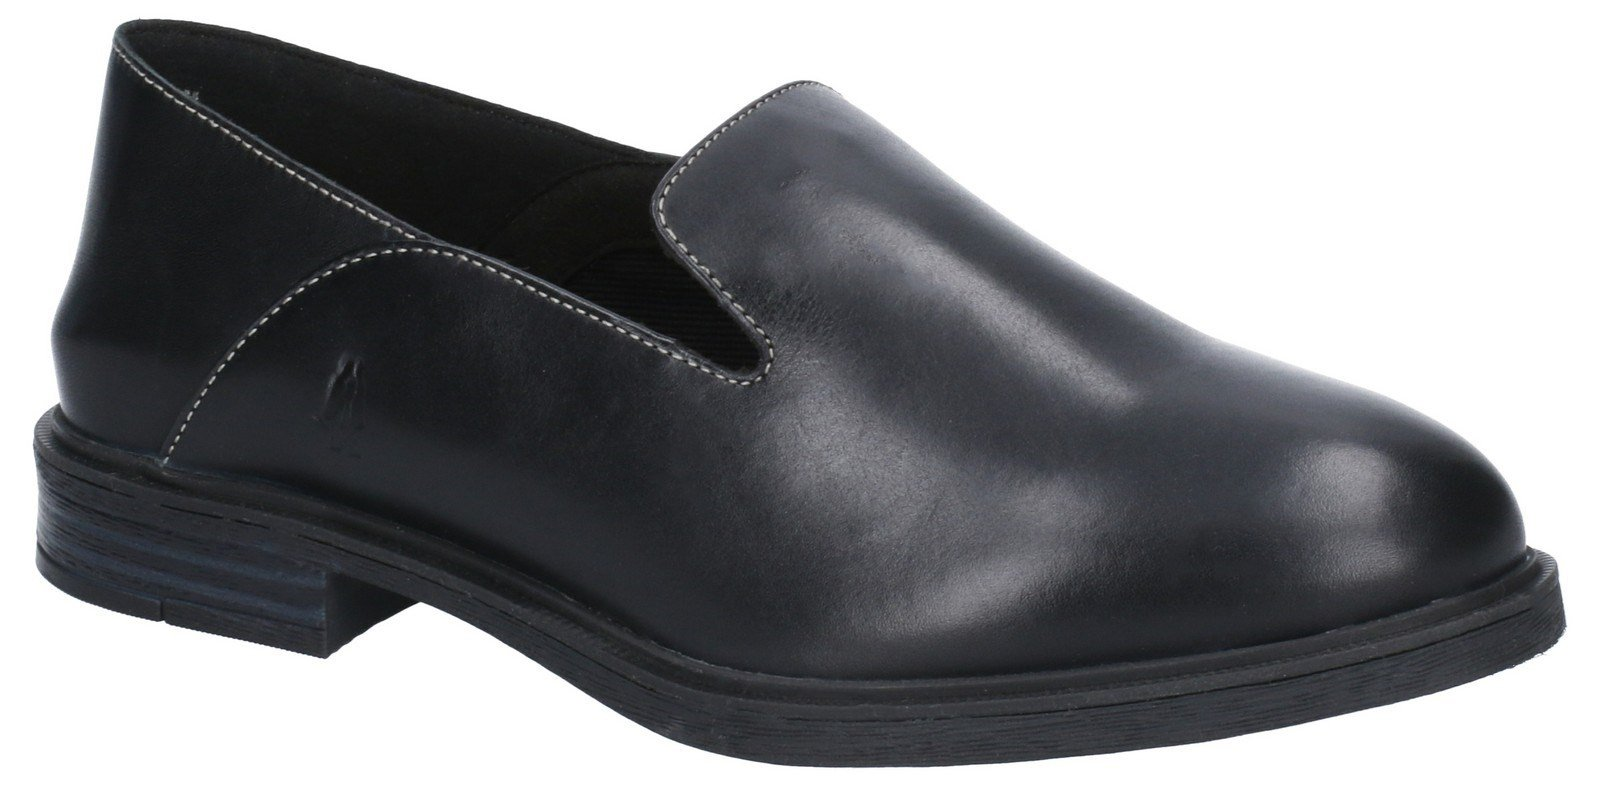 Hush Puppies Women's Bailey Bounce Slip On Flats Various Colours 29224 - Black Leather 3